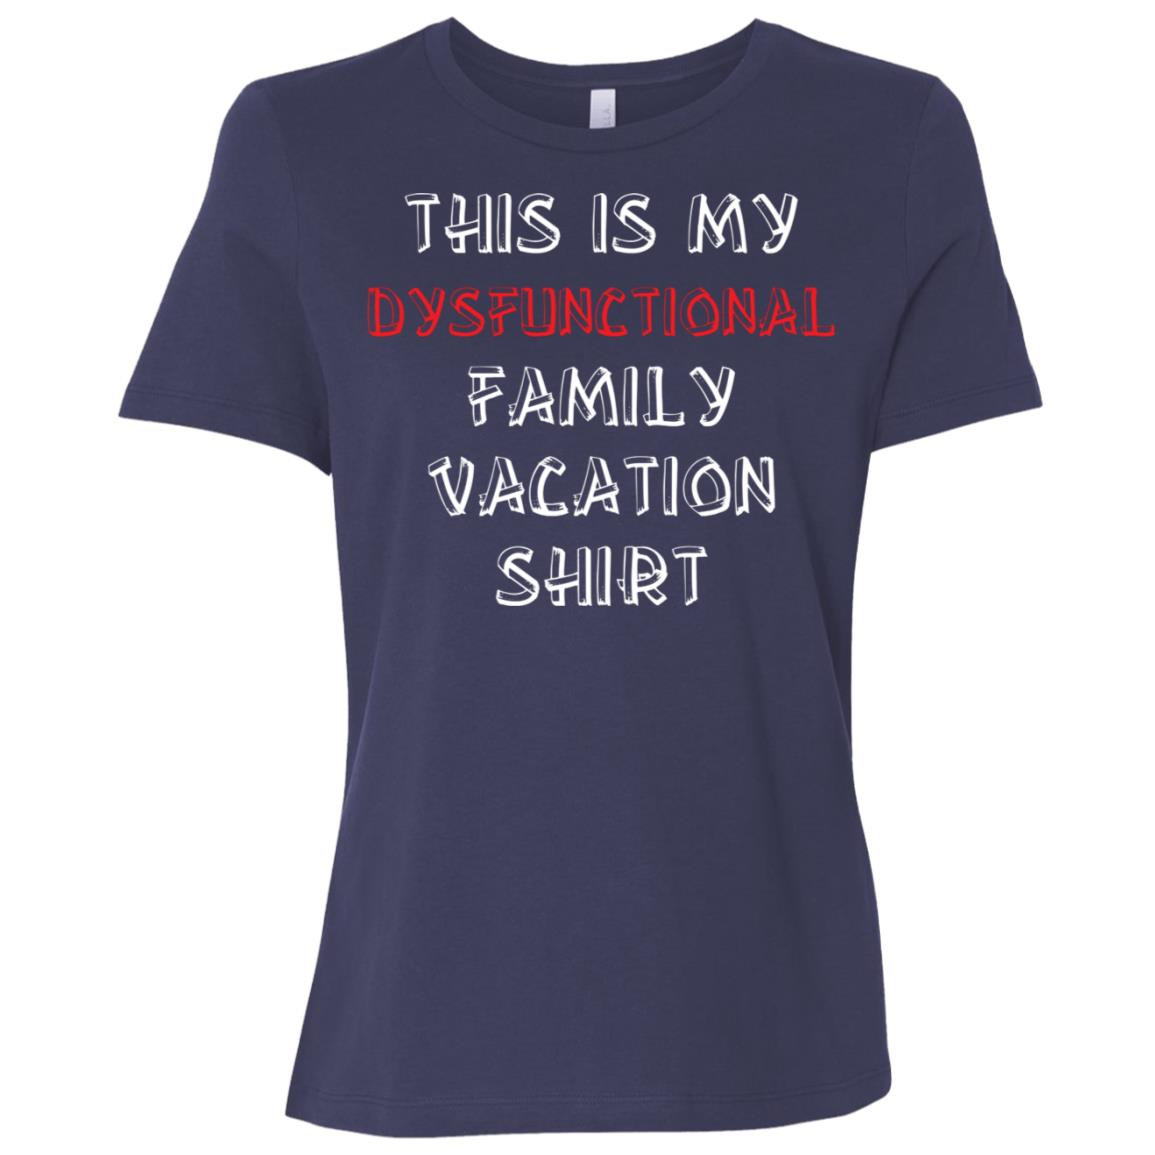 This is My Dysfunctional Family Vacation Funny Women Short Sleeve T-Shirt